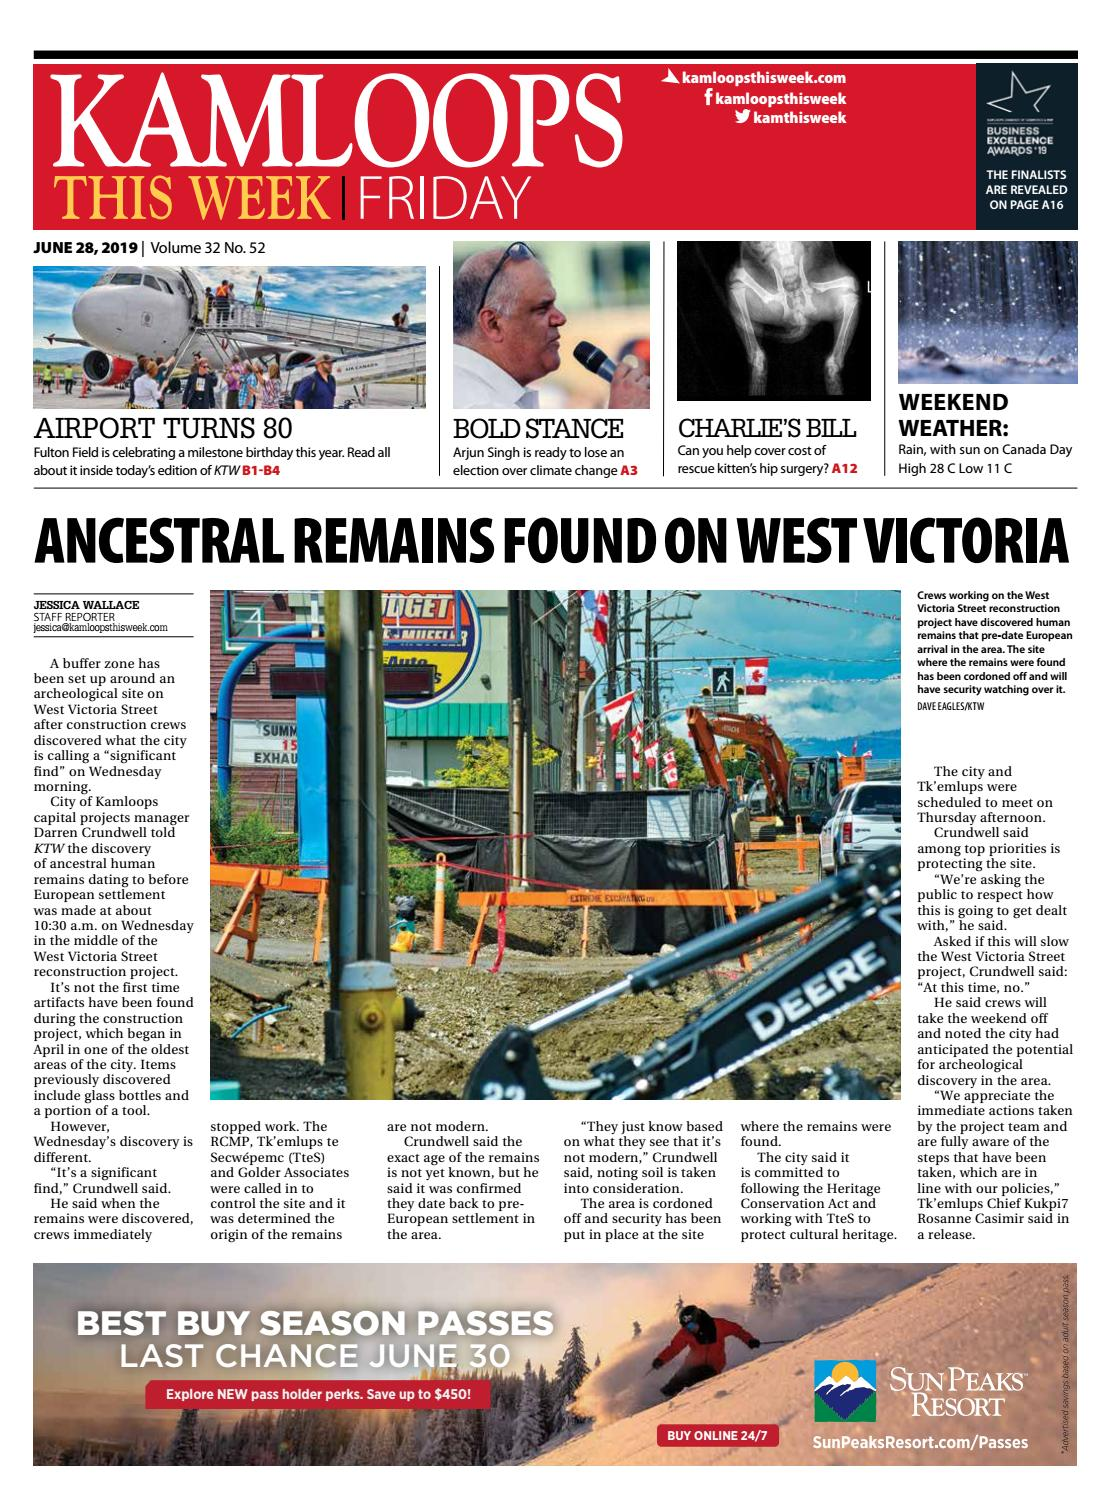 Kamloops This Week June 28, 2019 by KamloopsThisWeek - issuu